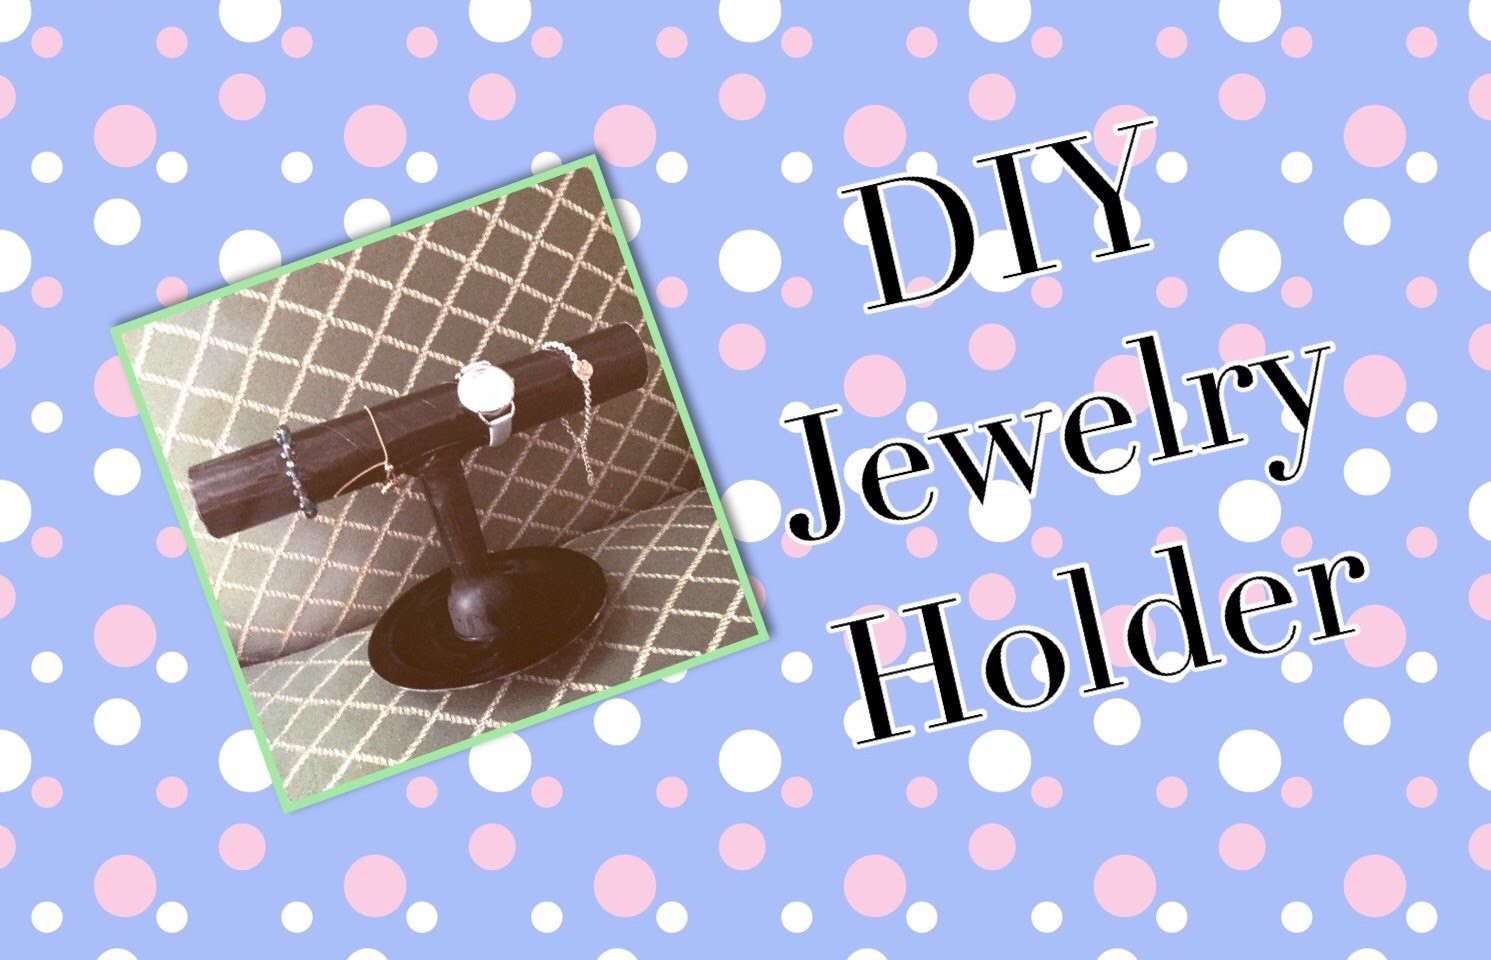 DIY JEWELRY HOLDER!!!!!!!!